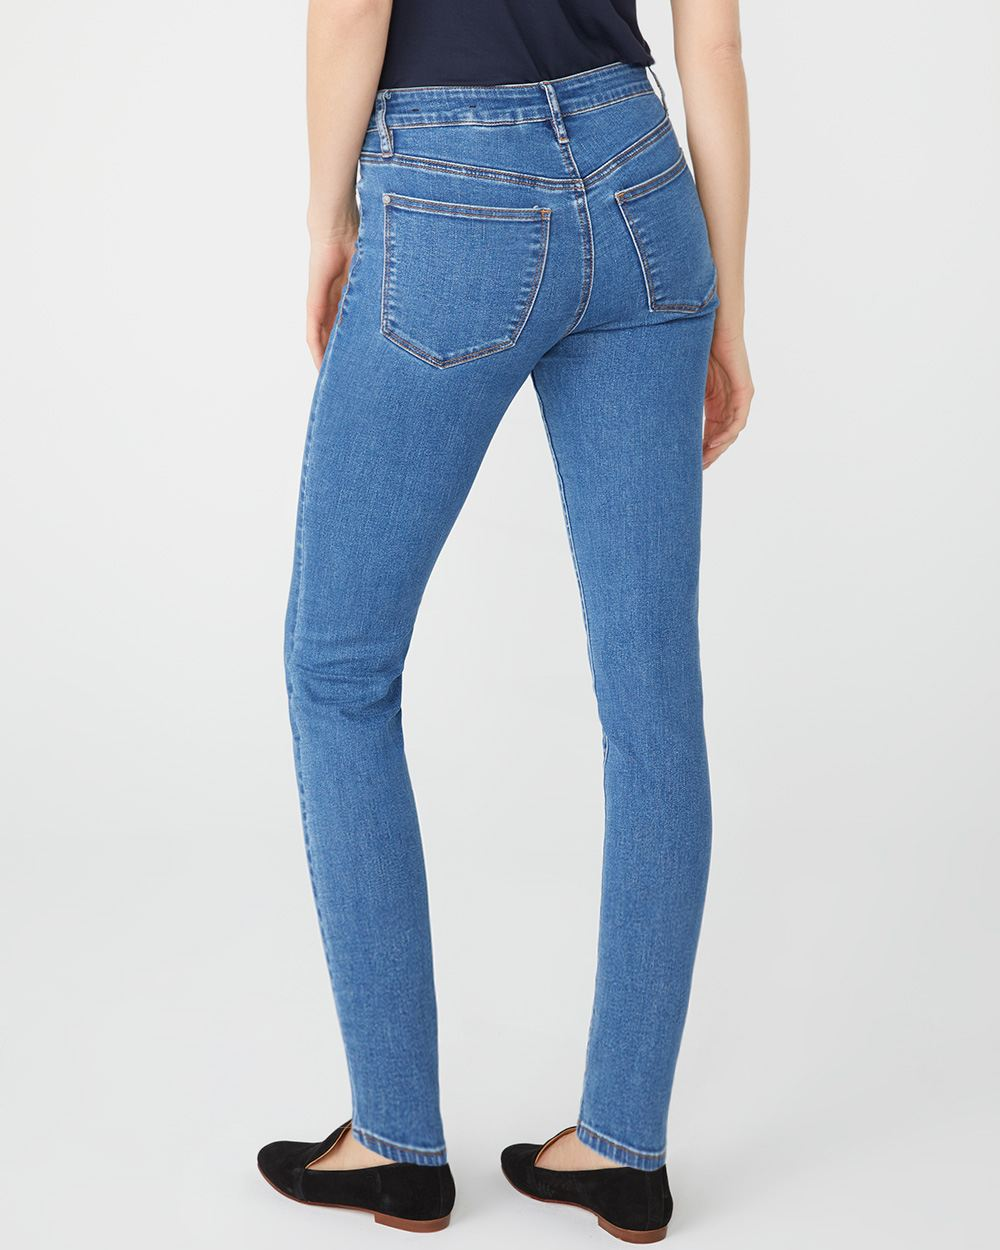 Mid-rise Sculpting skinny jeans in medium wash